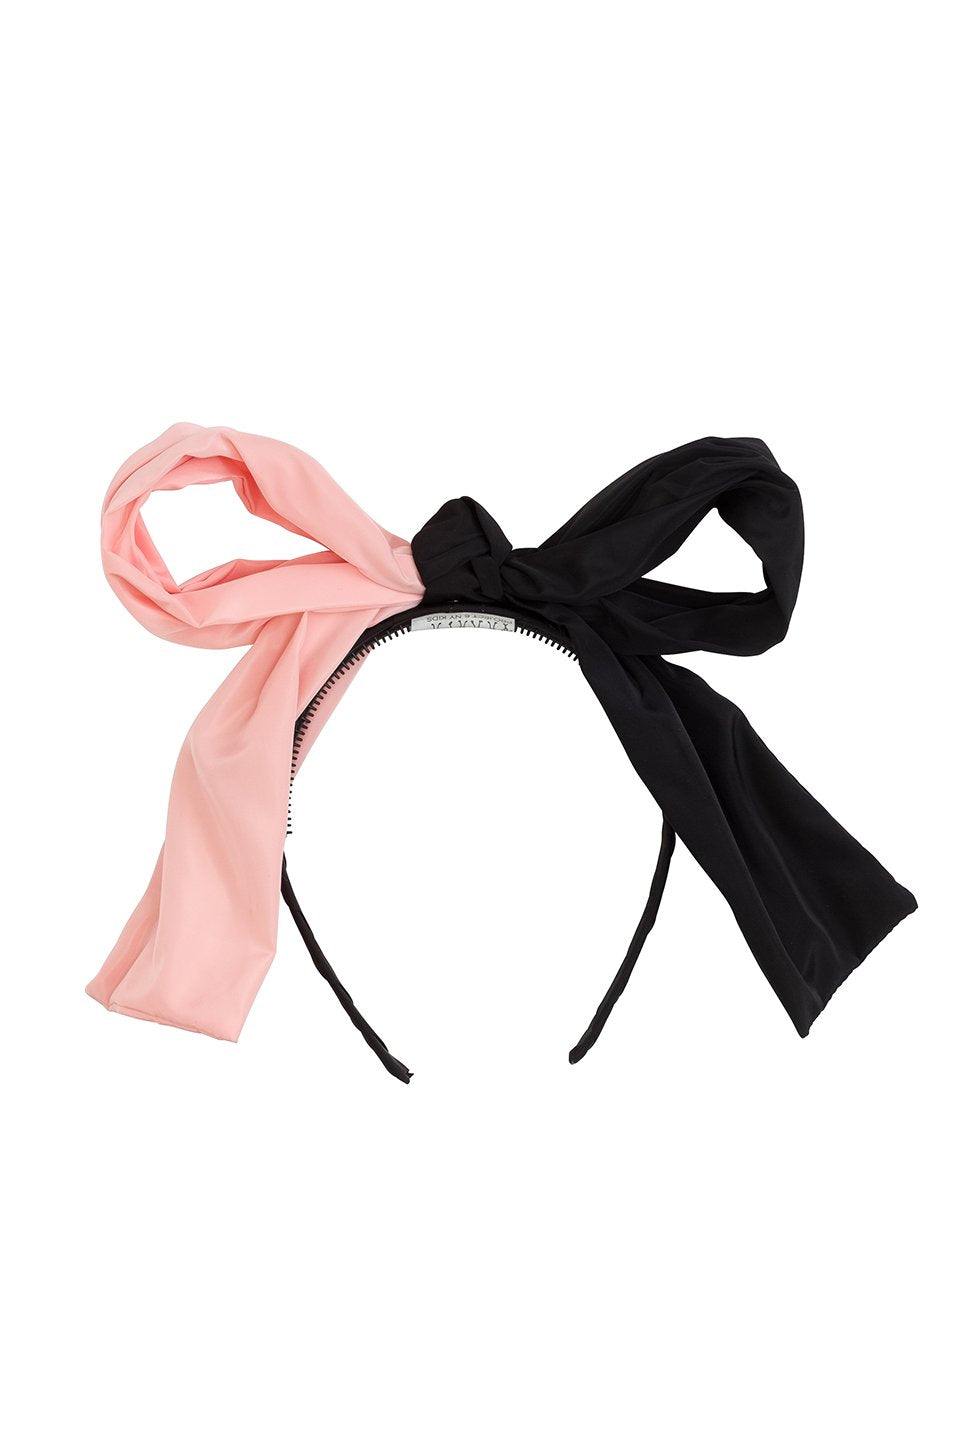 Sia Headband - Blush/Black - PROJECT 6, modest fashion